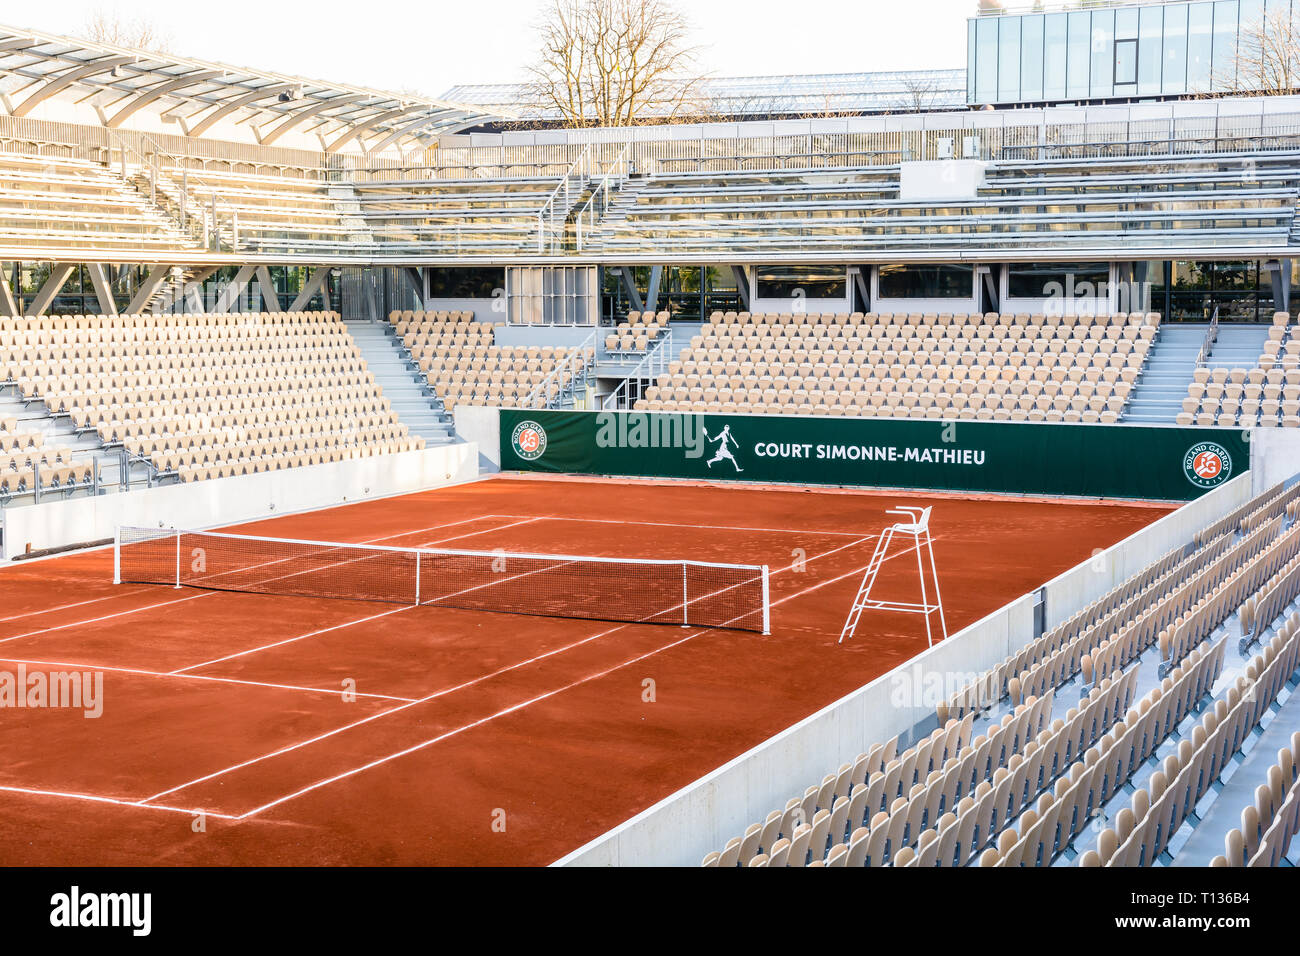 French Open Stadion